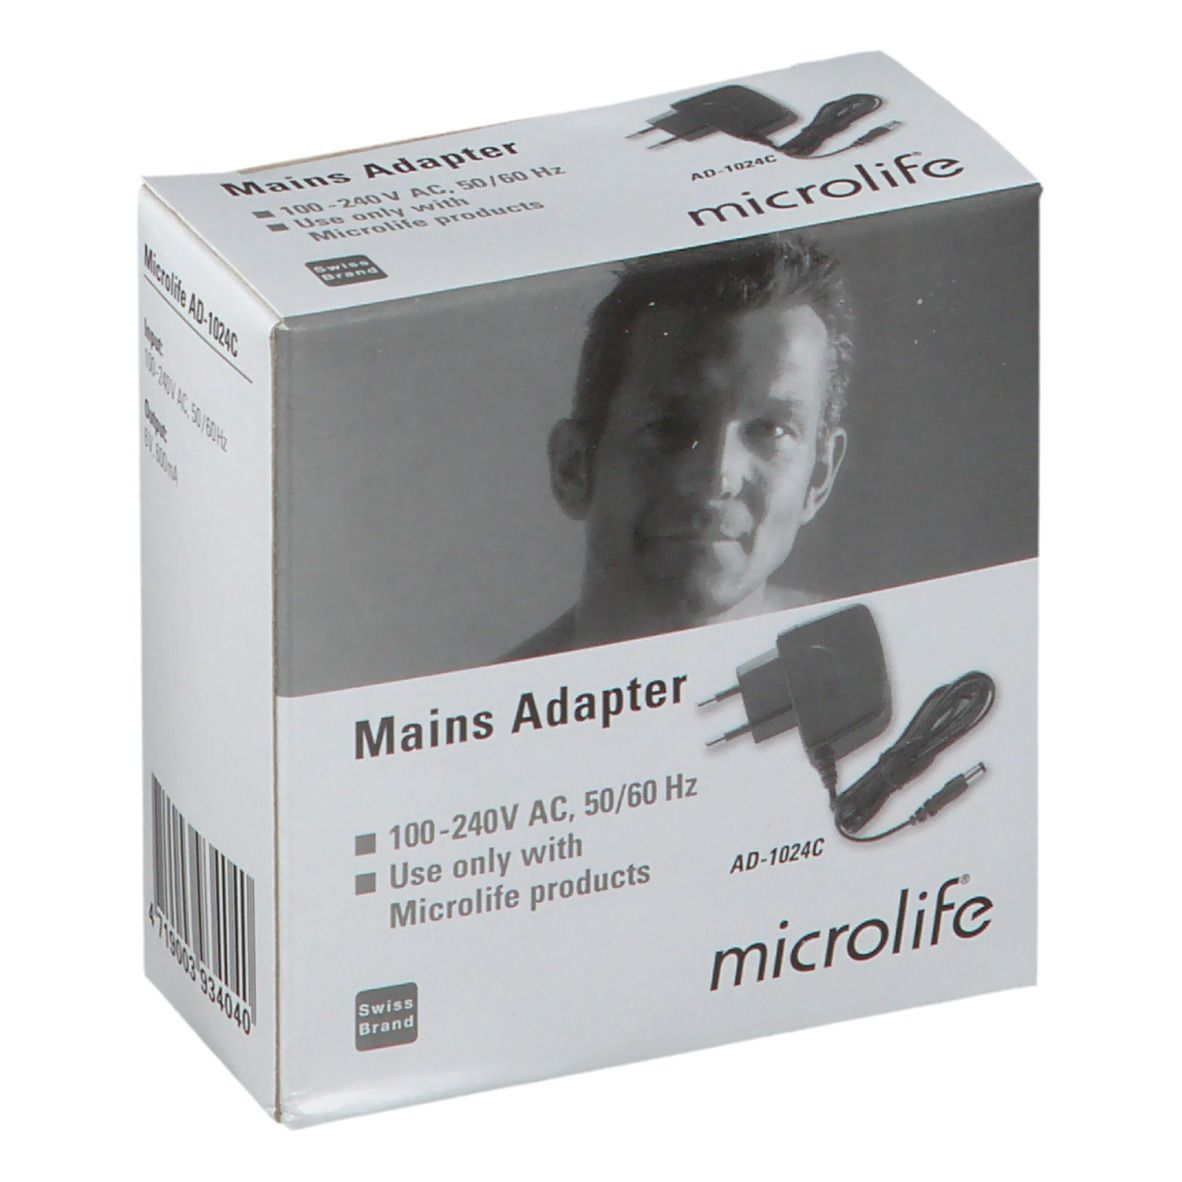 Image of microlife® Netzteil